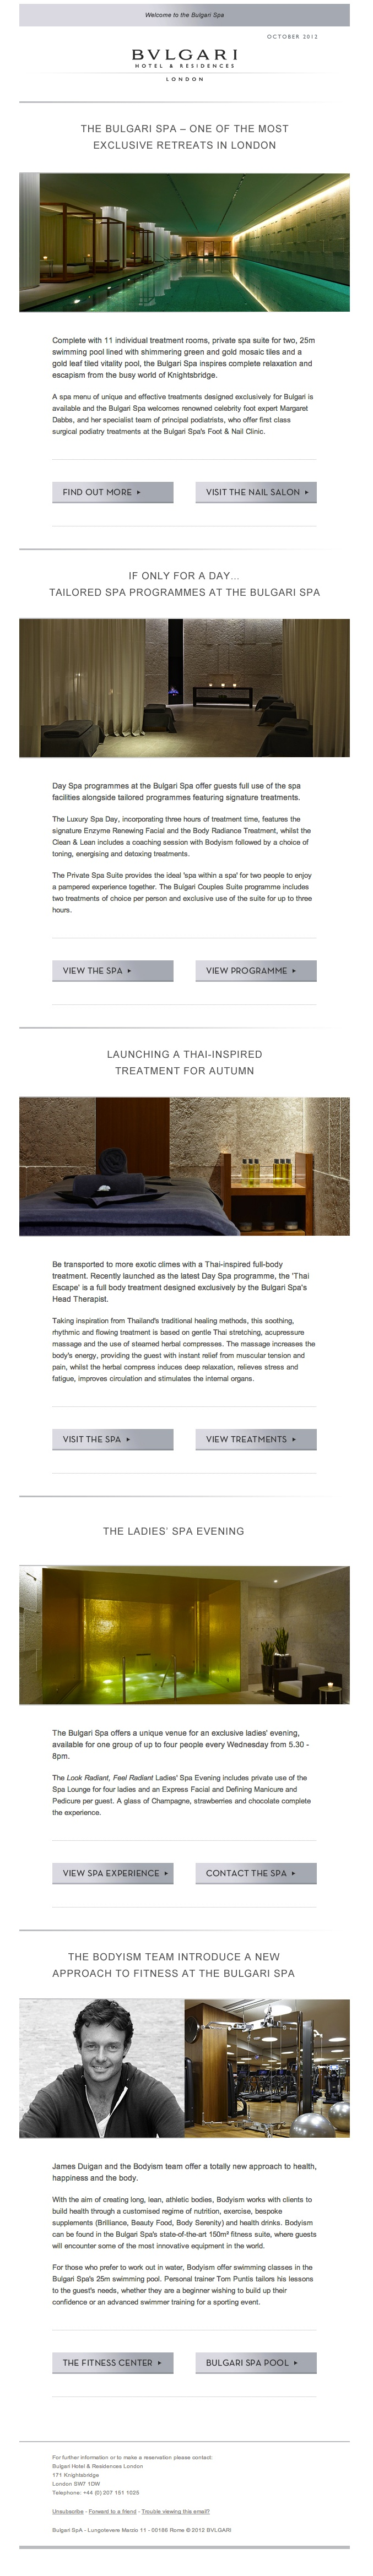 Our design for Bulgari Hotels - Spa